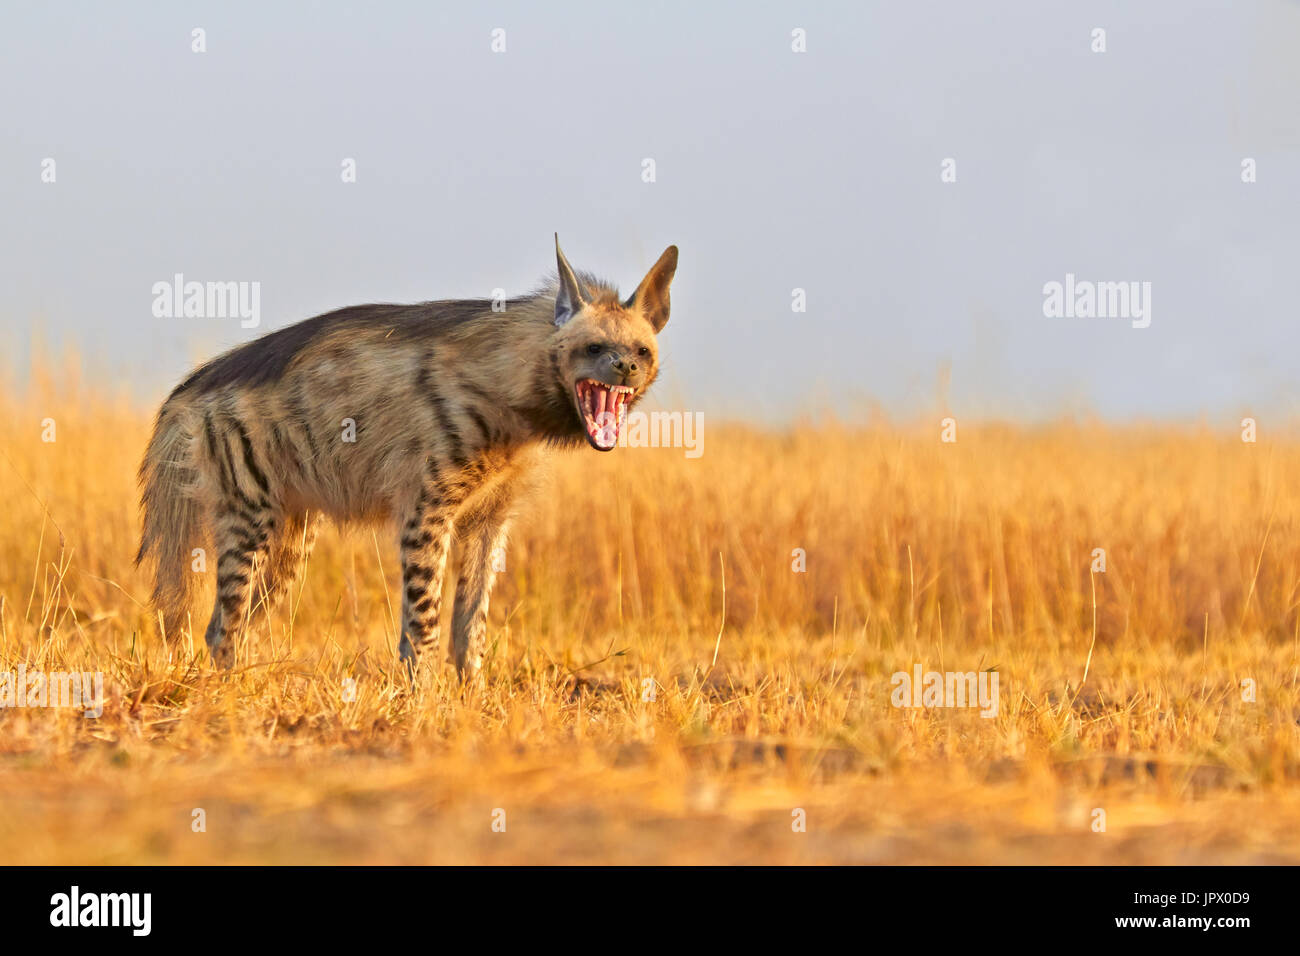 Indian Hyena Stock Photos Amp Indian Hyena Stock Images Alamy